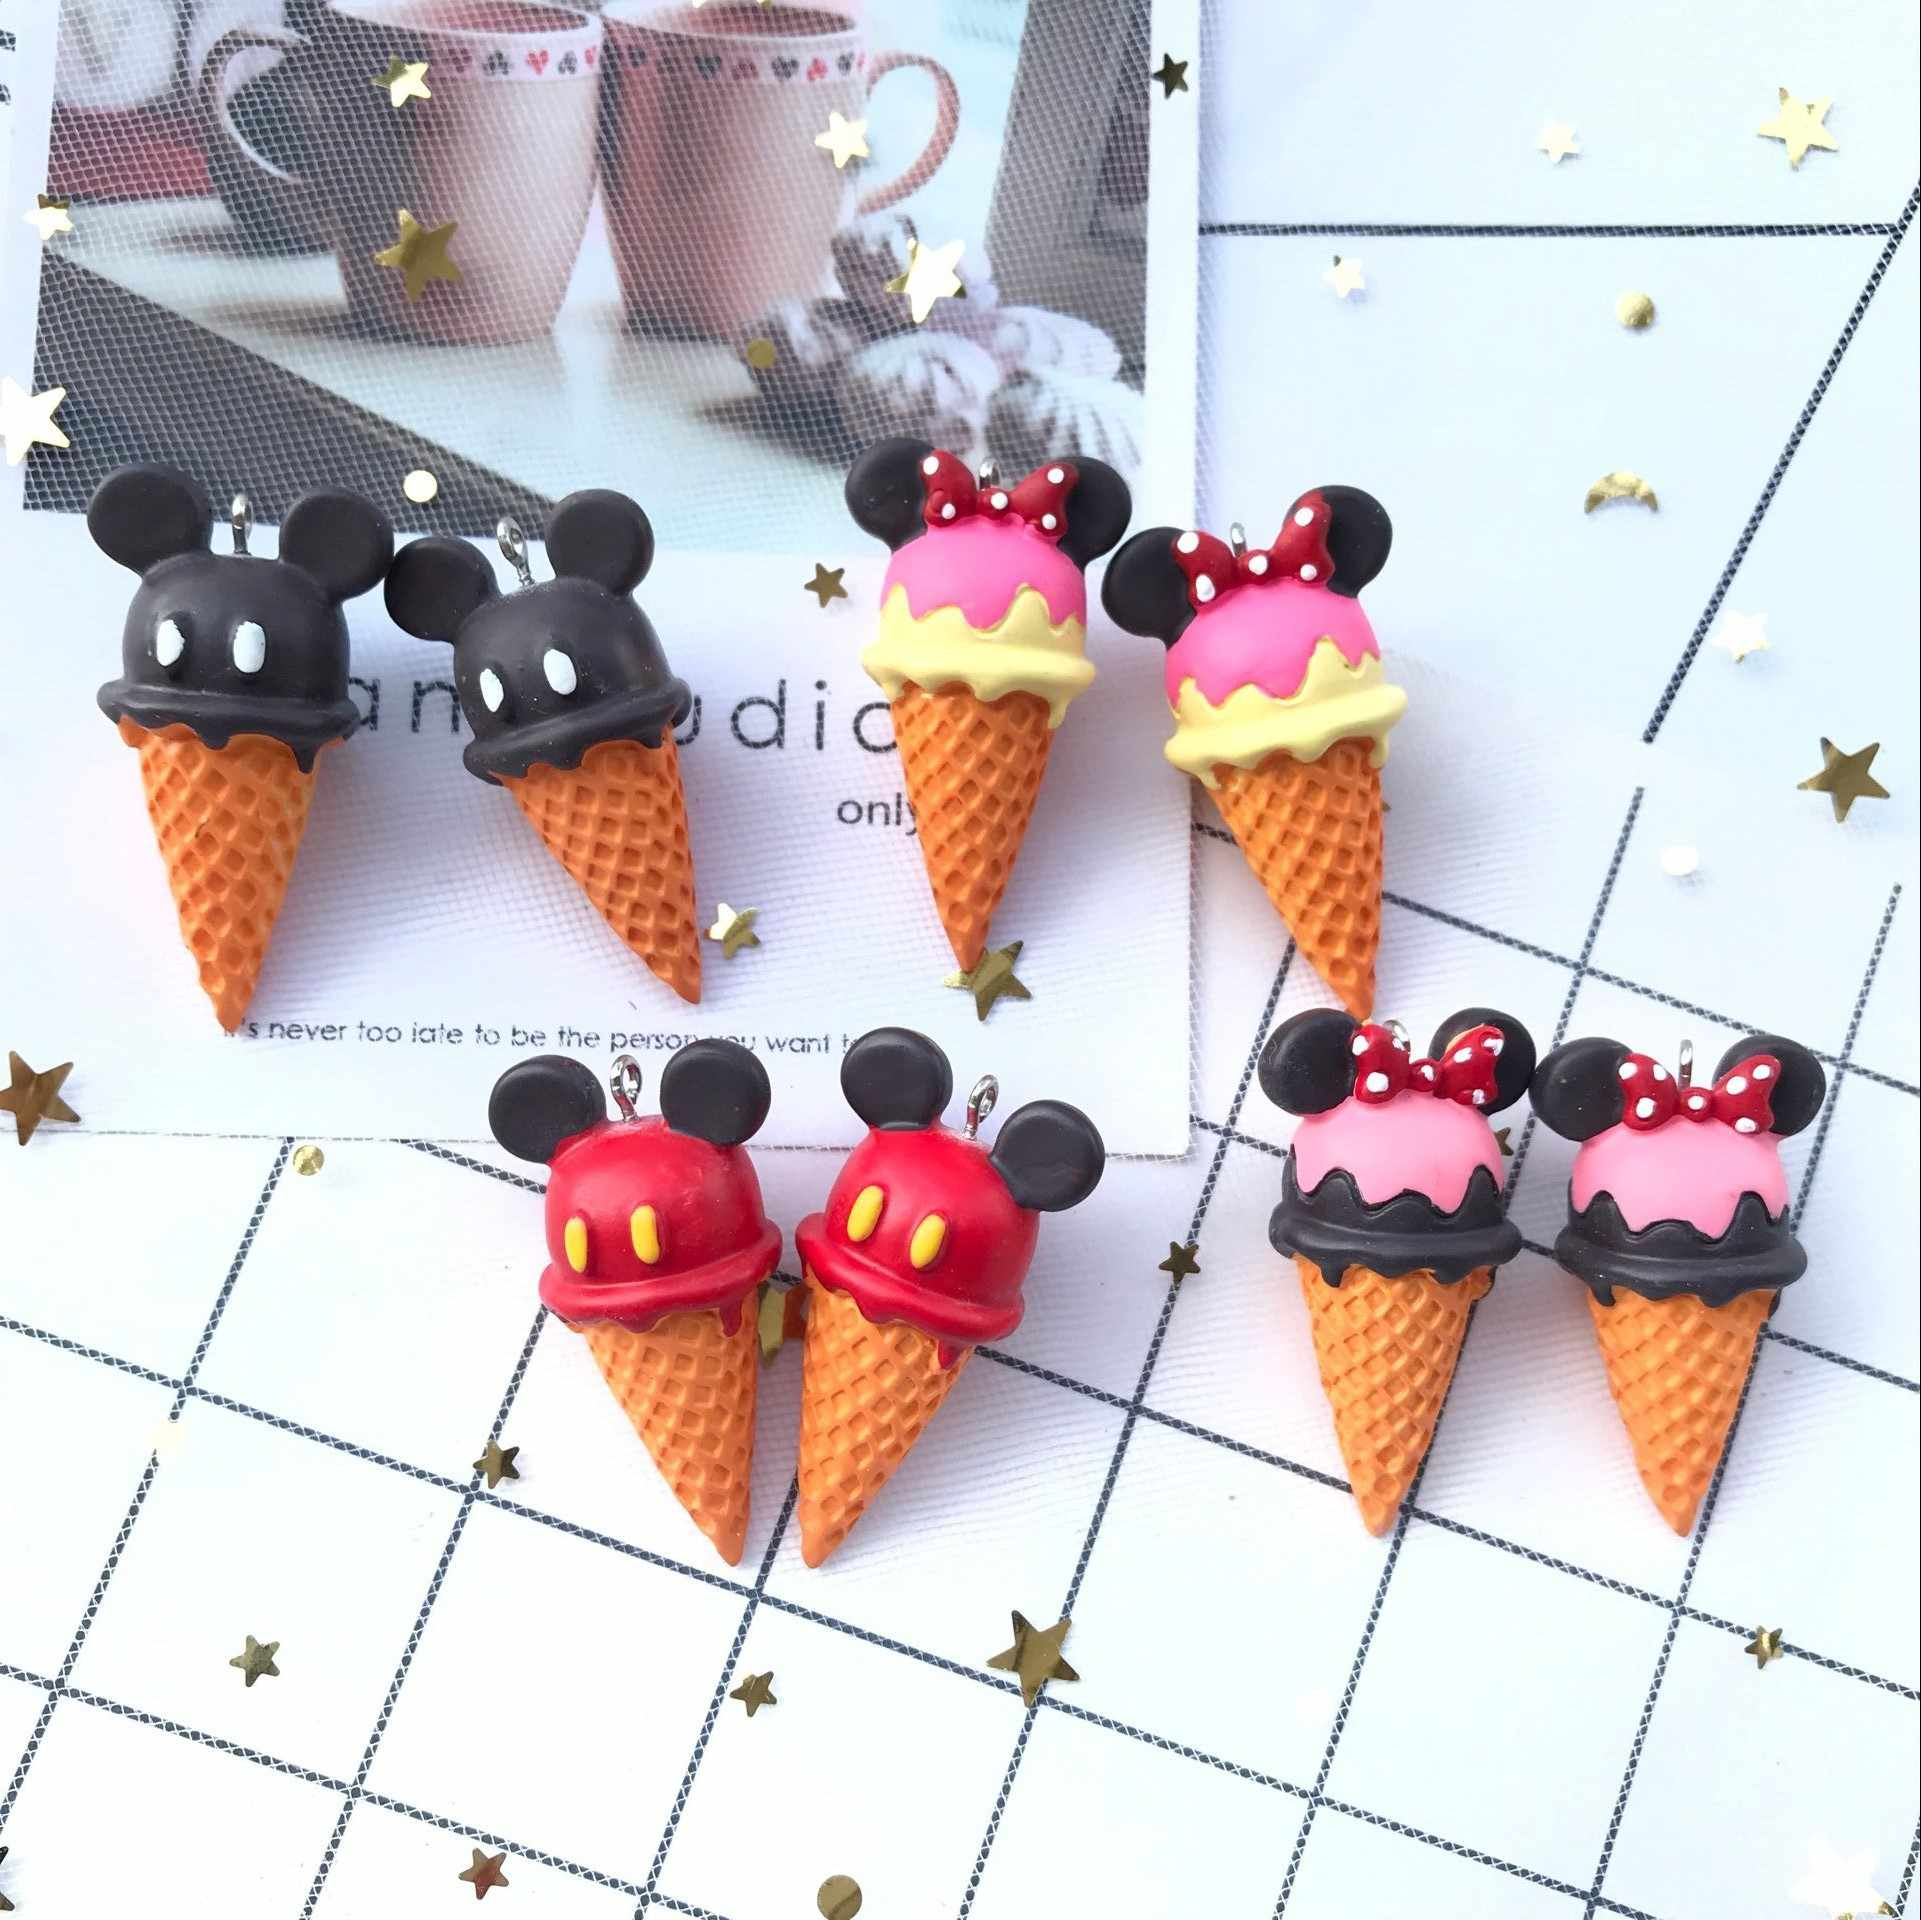 45*25mm 4pcs new 3d resin  ice cream necklace charms keychain pendant necklace pendant for DIY decoration